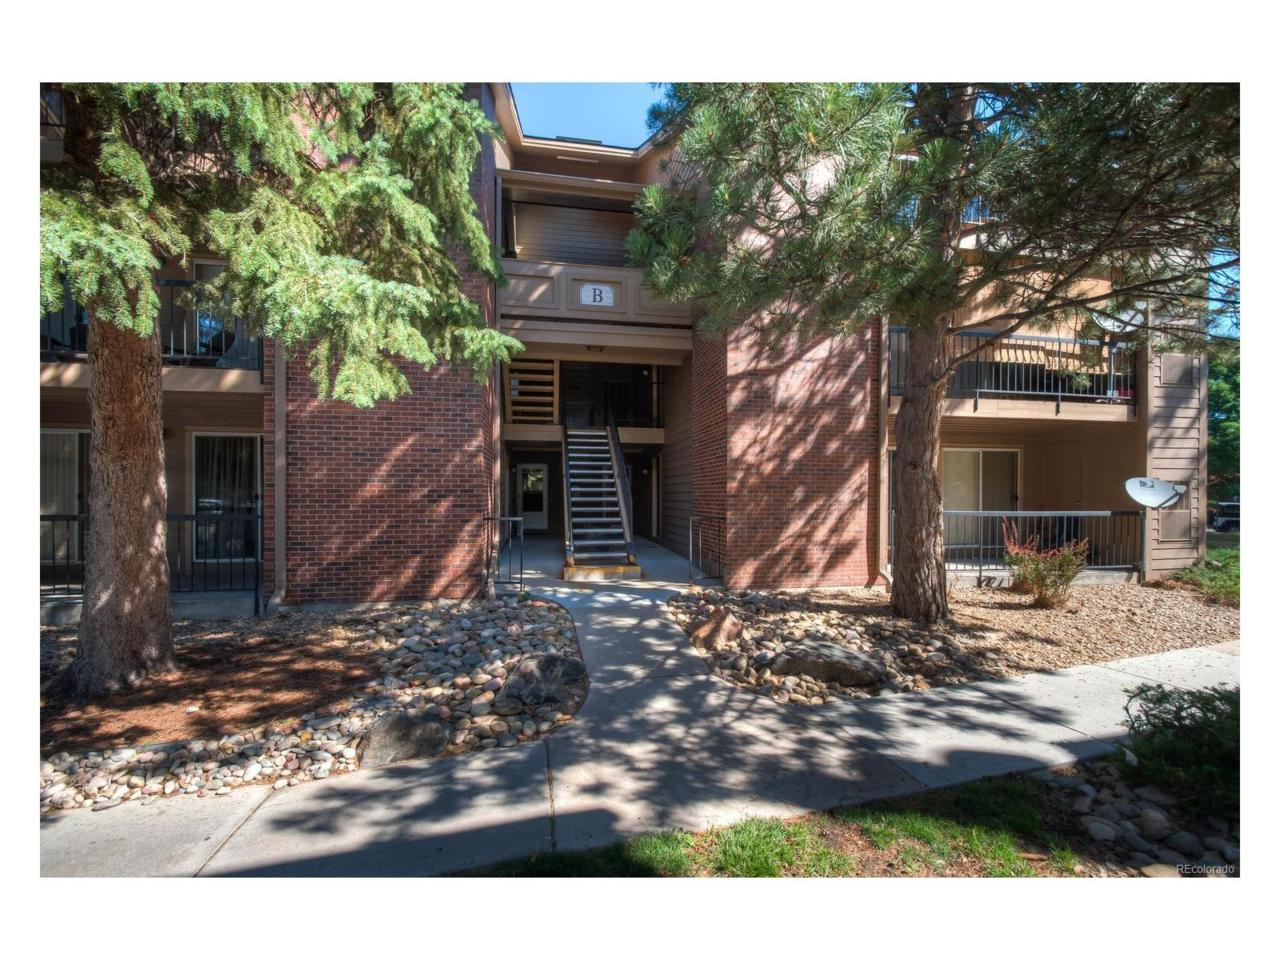 4899 S Dudley Street B14, Denver, CO 80123 (MLS #1751530) :: 8z Real Estate